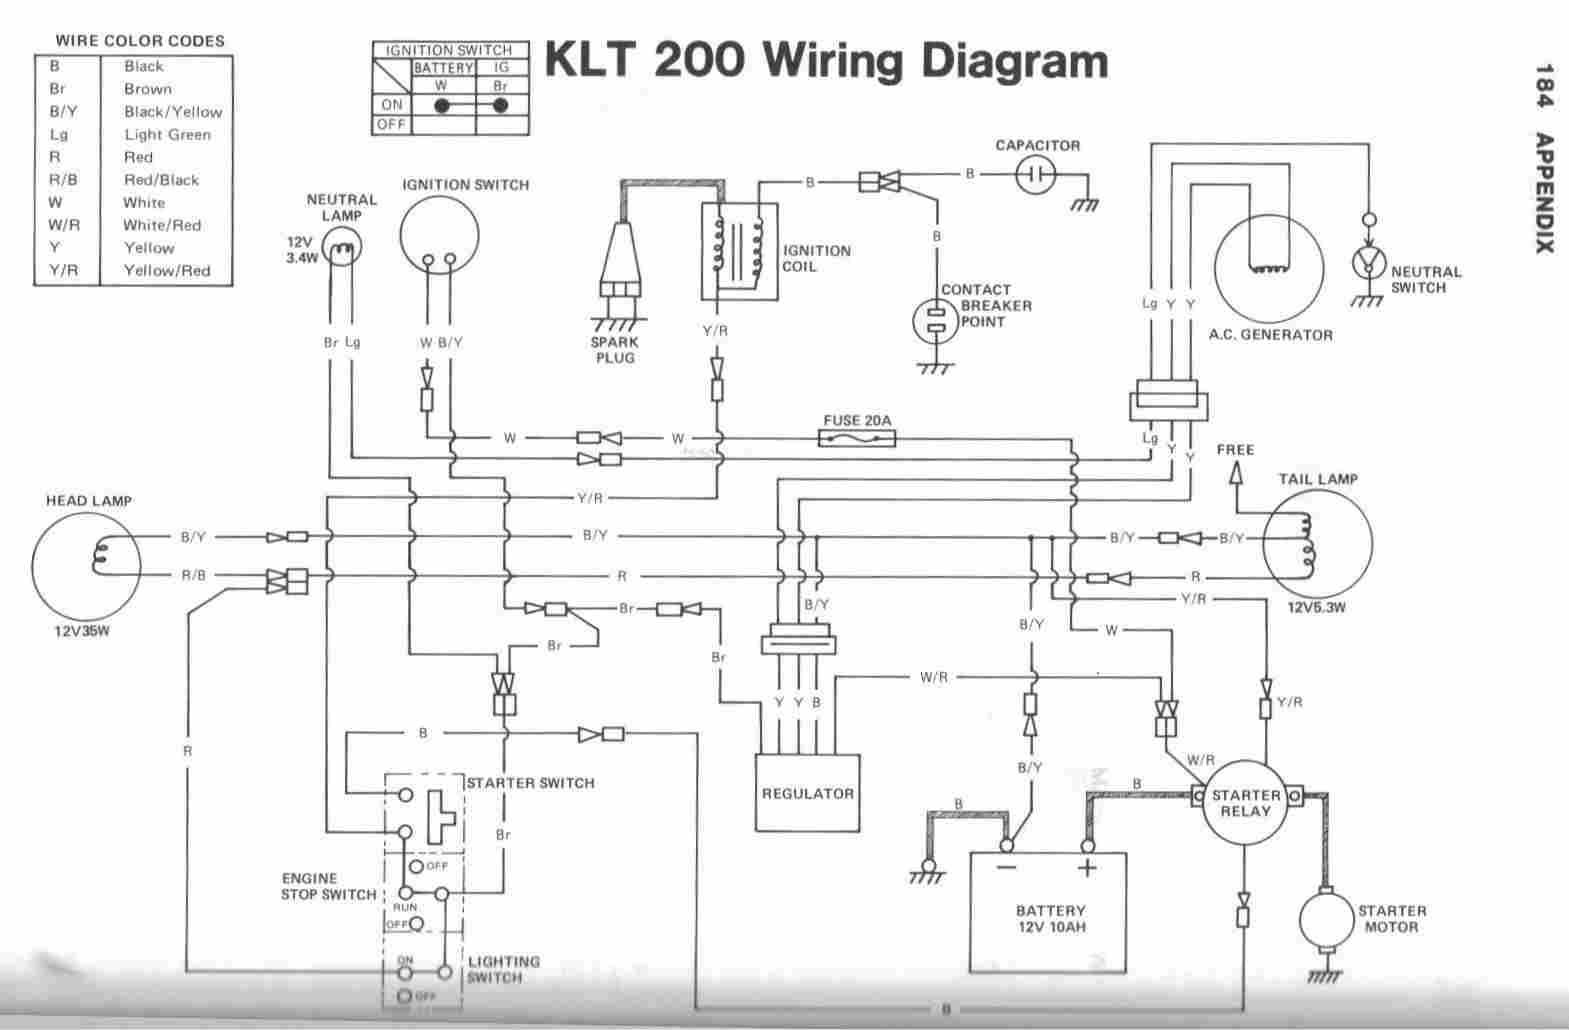 2869034594ce054a636782e5c44b61b4 residential electrical wiring diagrams pdf easy routing cool electrical wiring diagrams at gsmportal.co